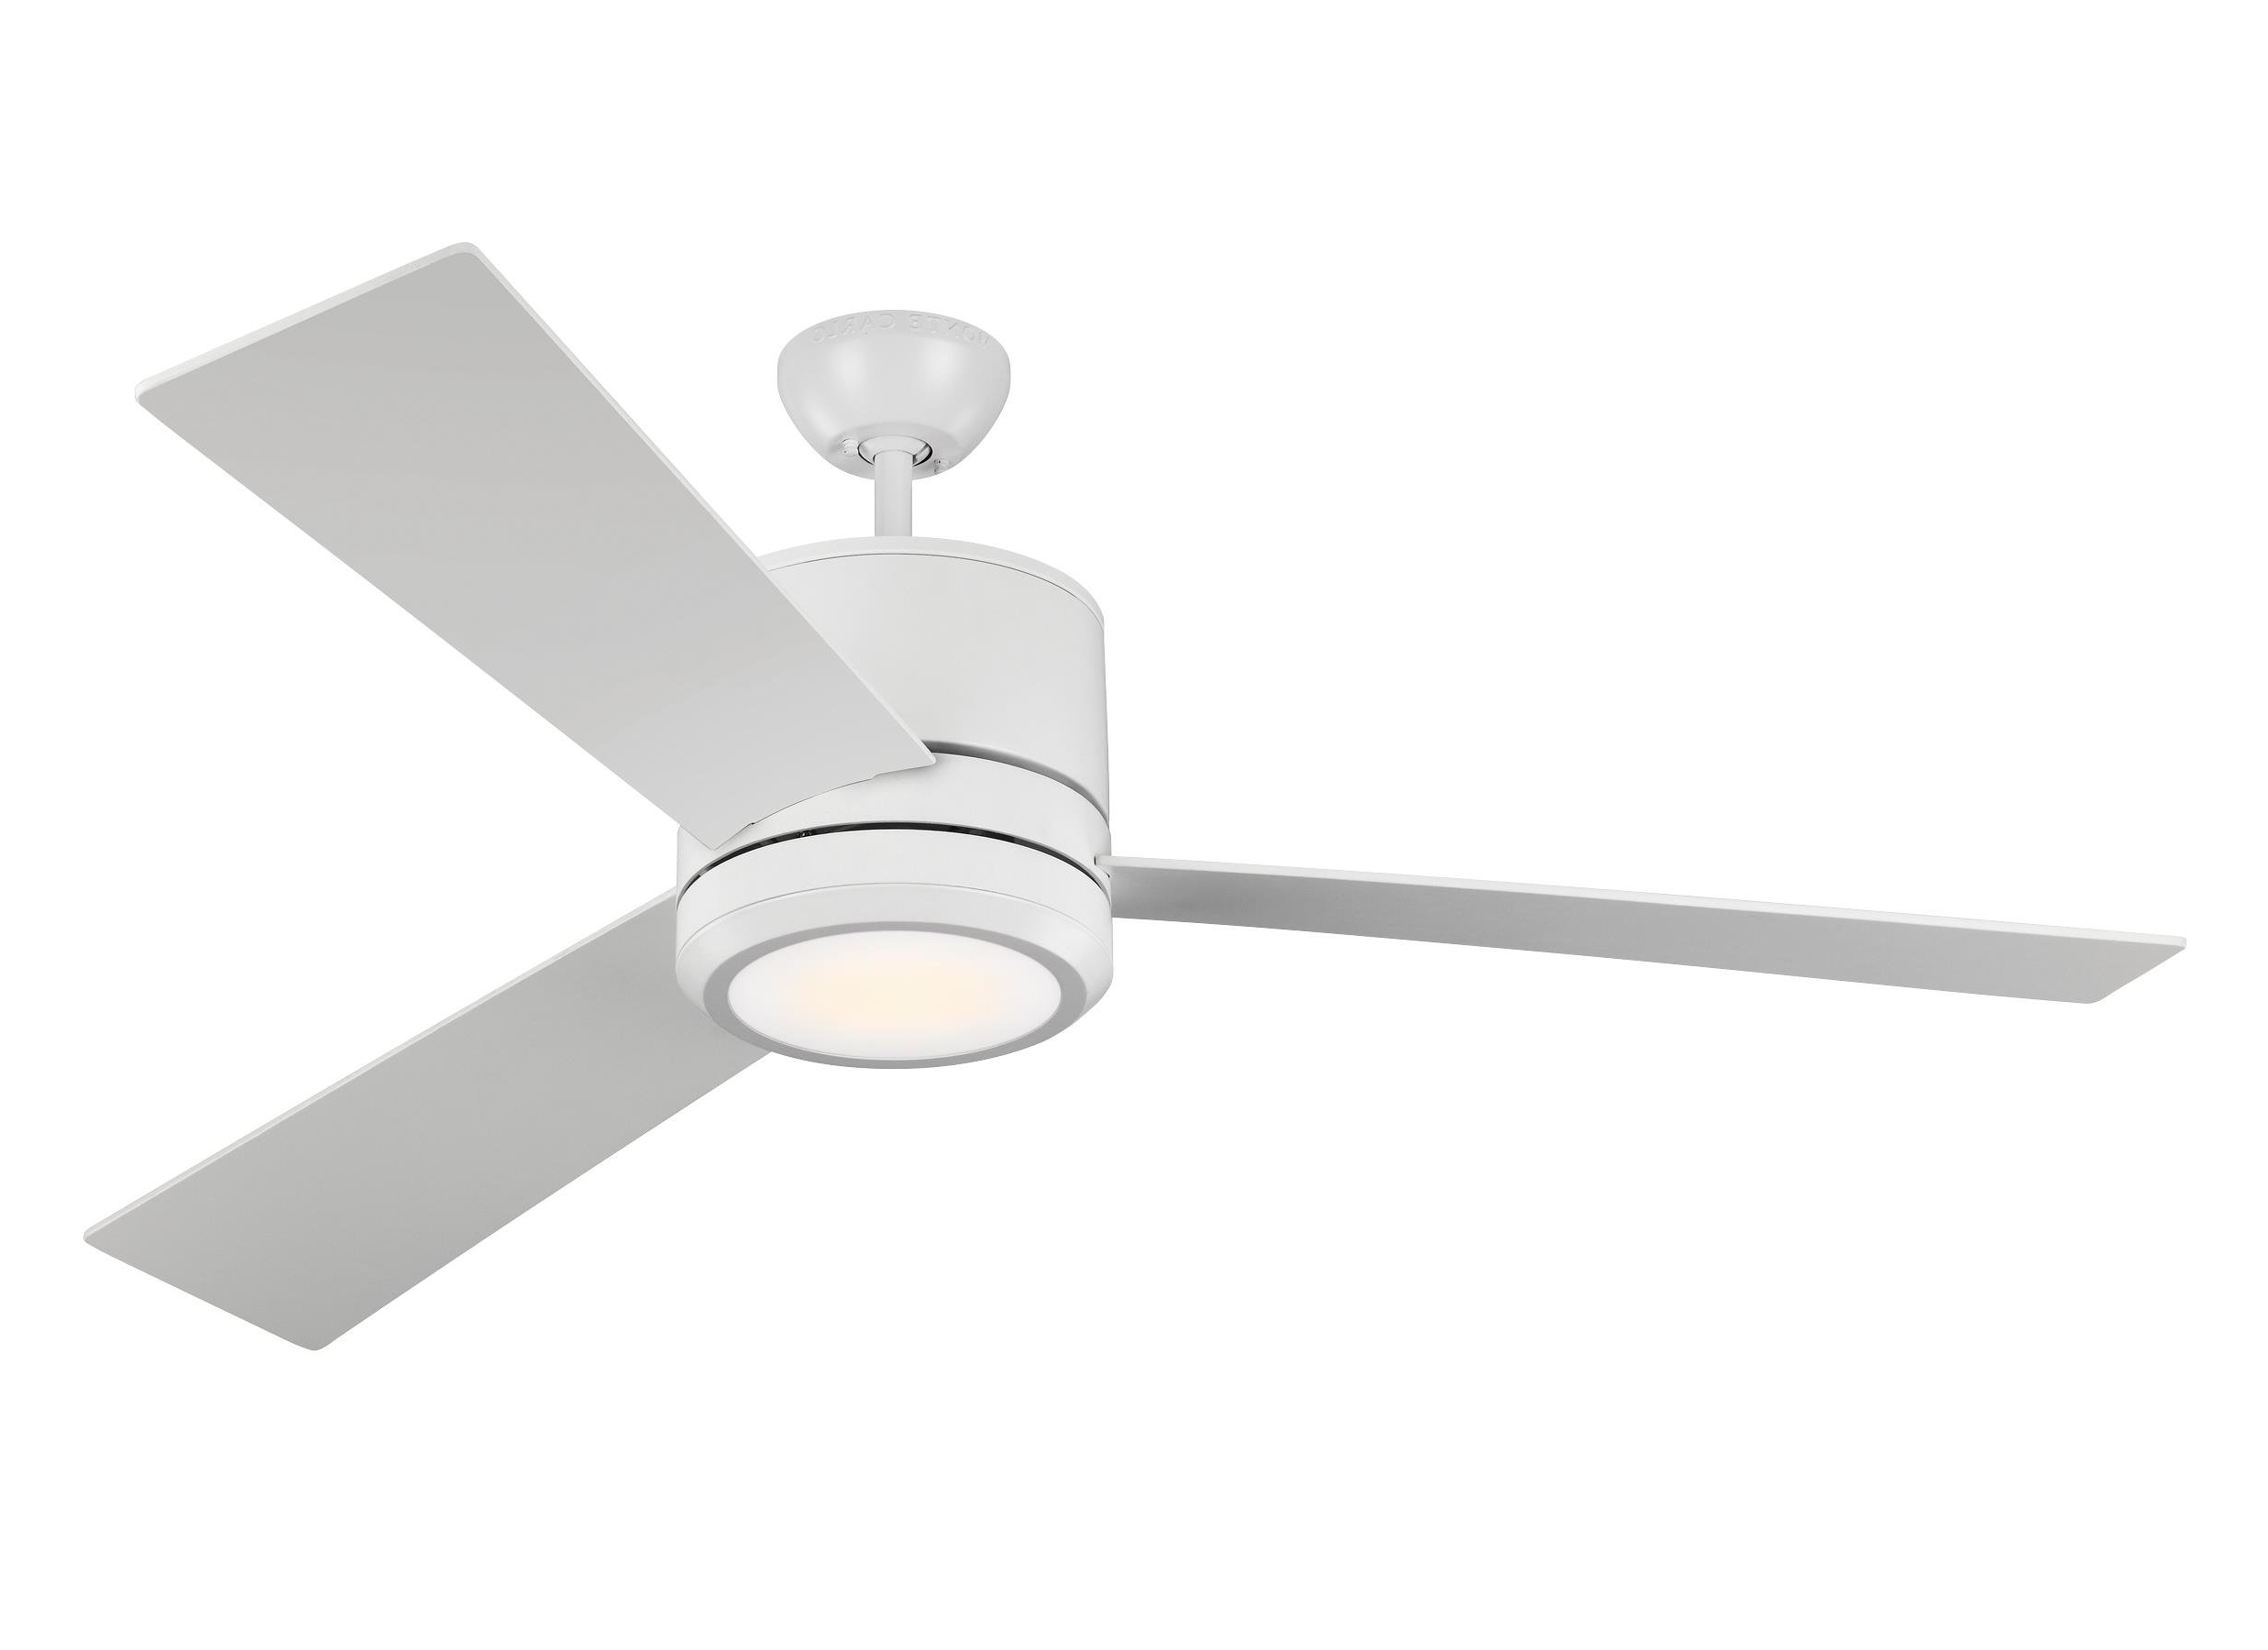 "Most Recent Brayden Studio 56"" Ossu 3 Blade Led Ceiling Fan, Light Kit Included Intended For Heskett 3 Blade Led Ceiling Fans (View 16 of 20)"